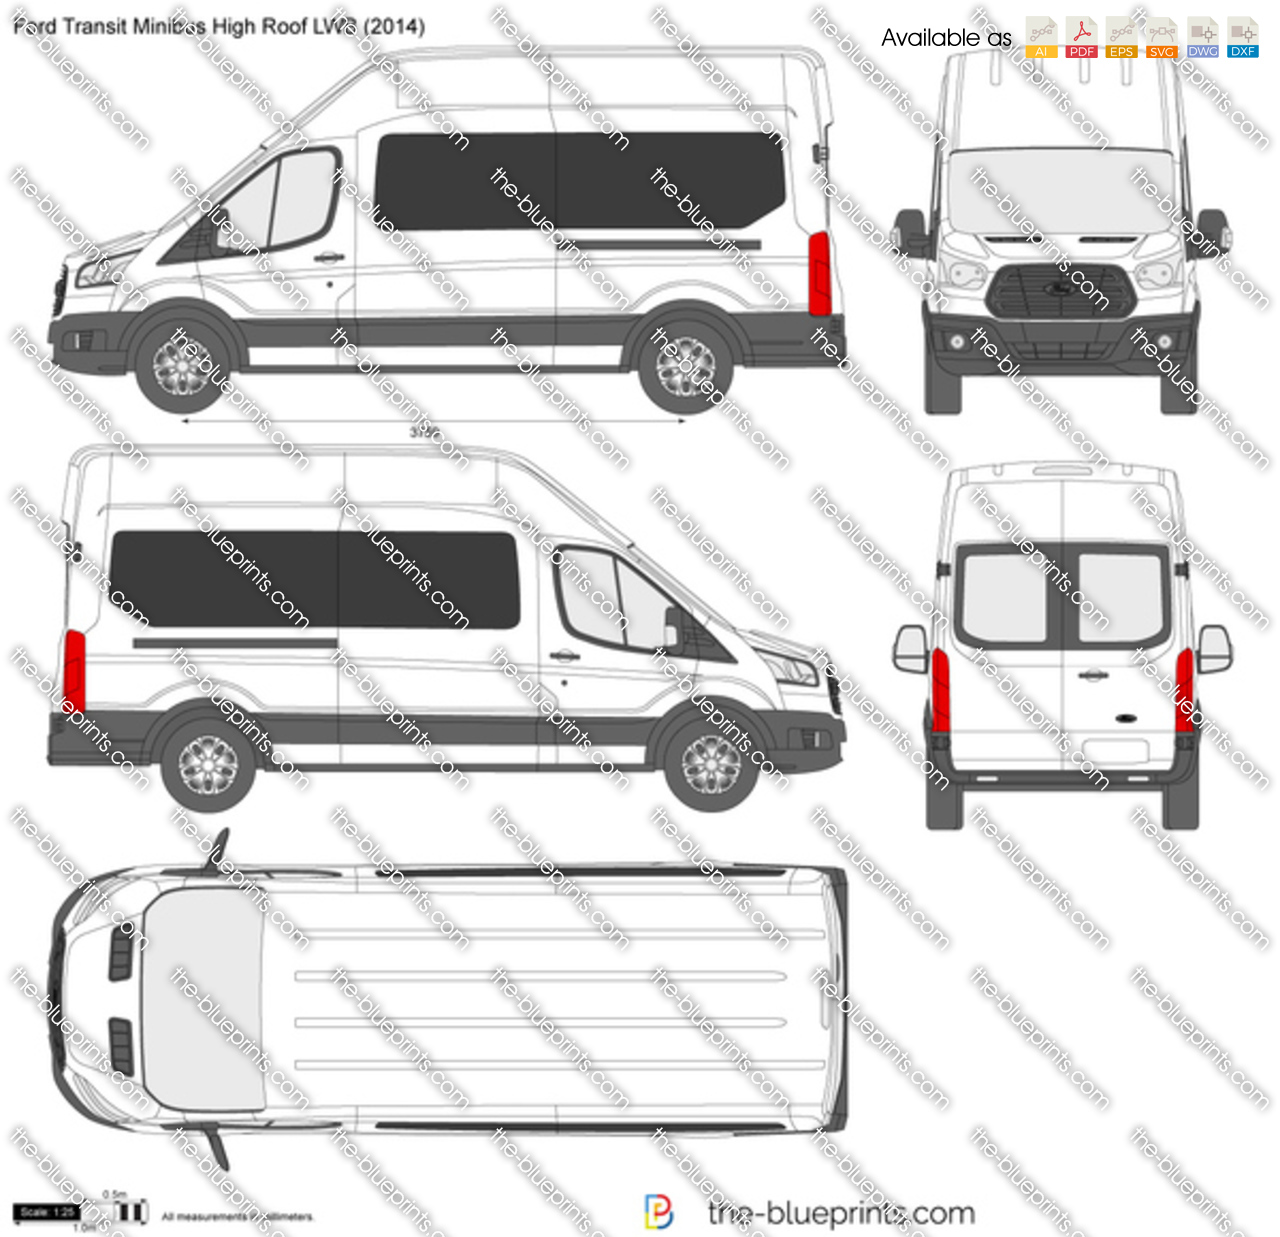 Ford Transit Minibus High Roof Lwb Vector Drawing